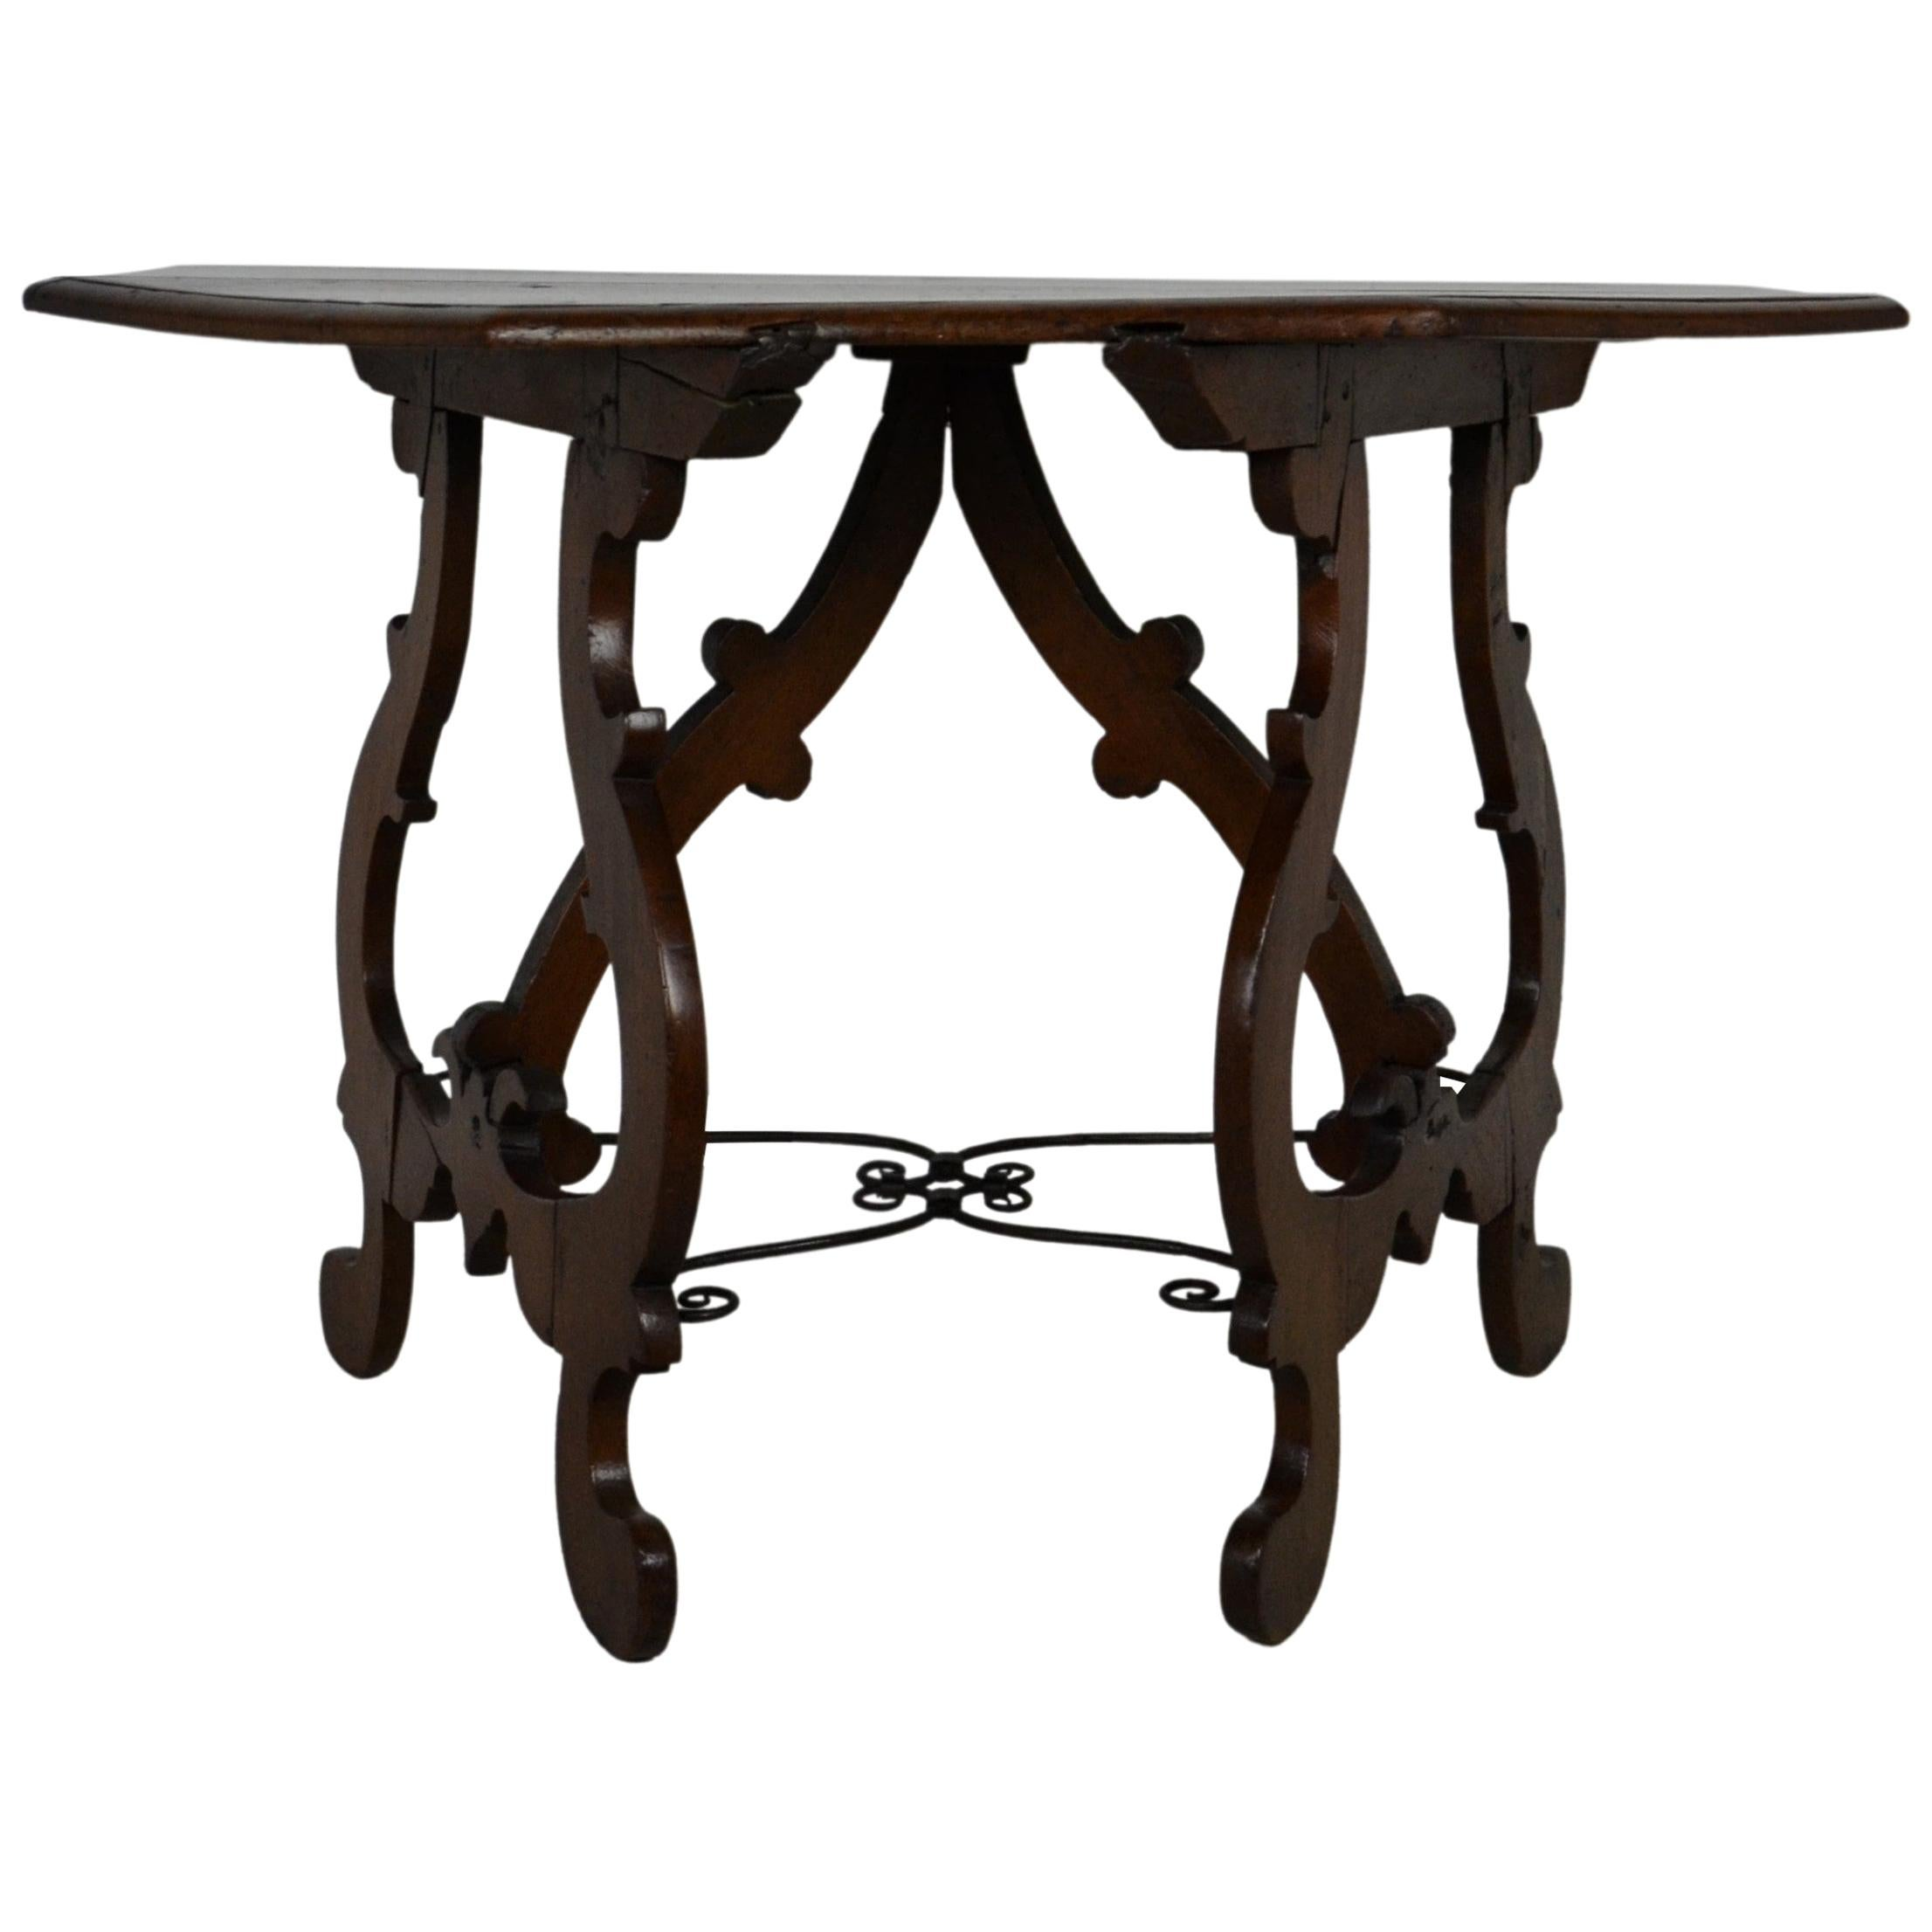 18th Century Rustic Console Table